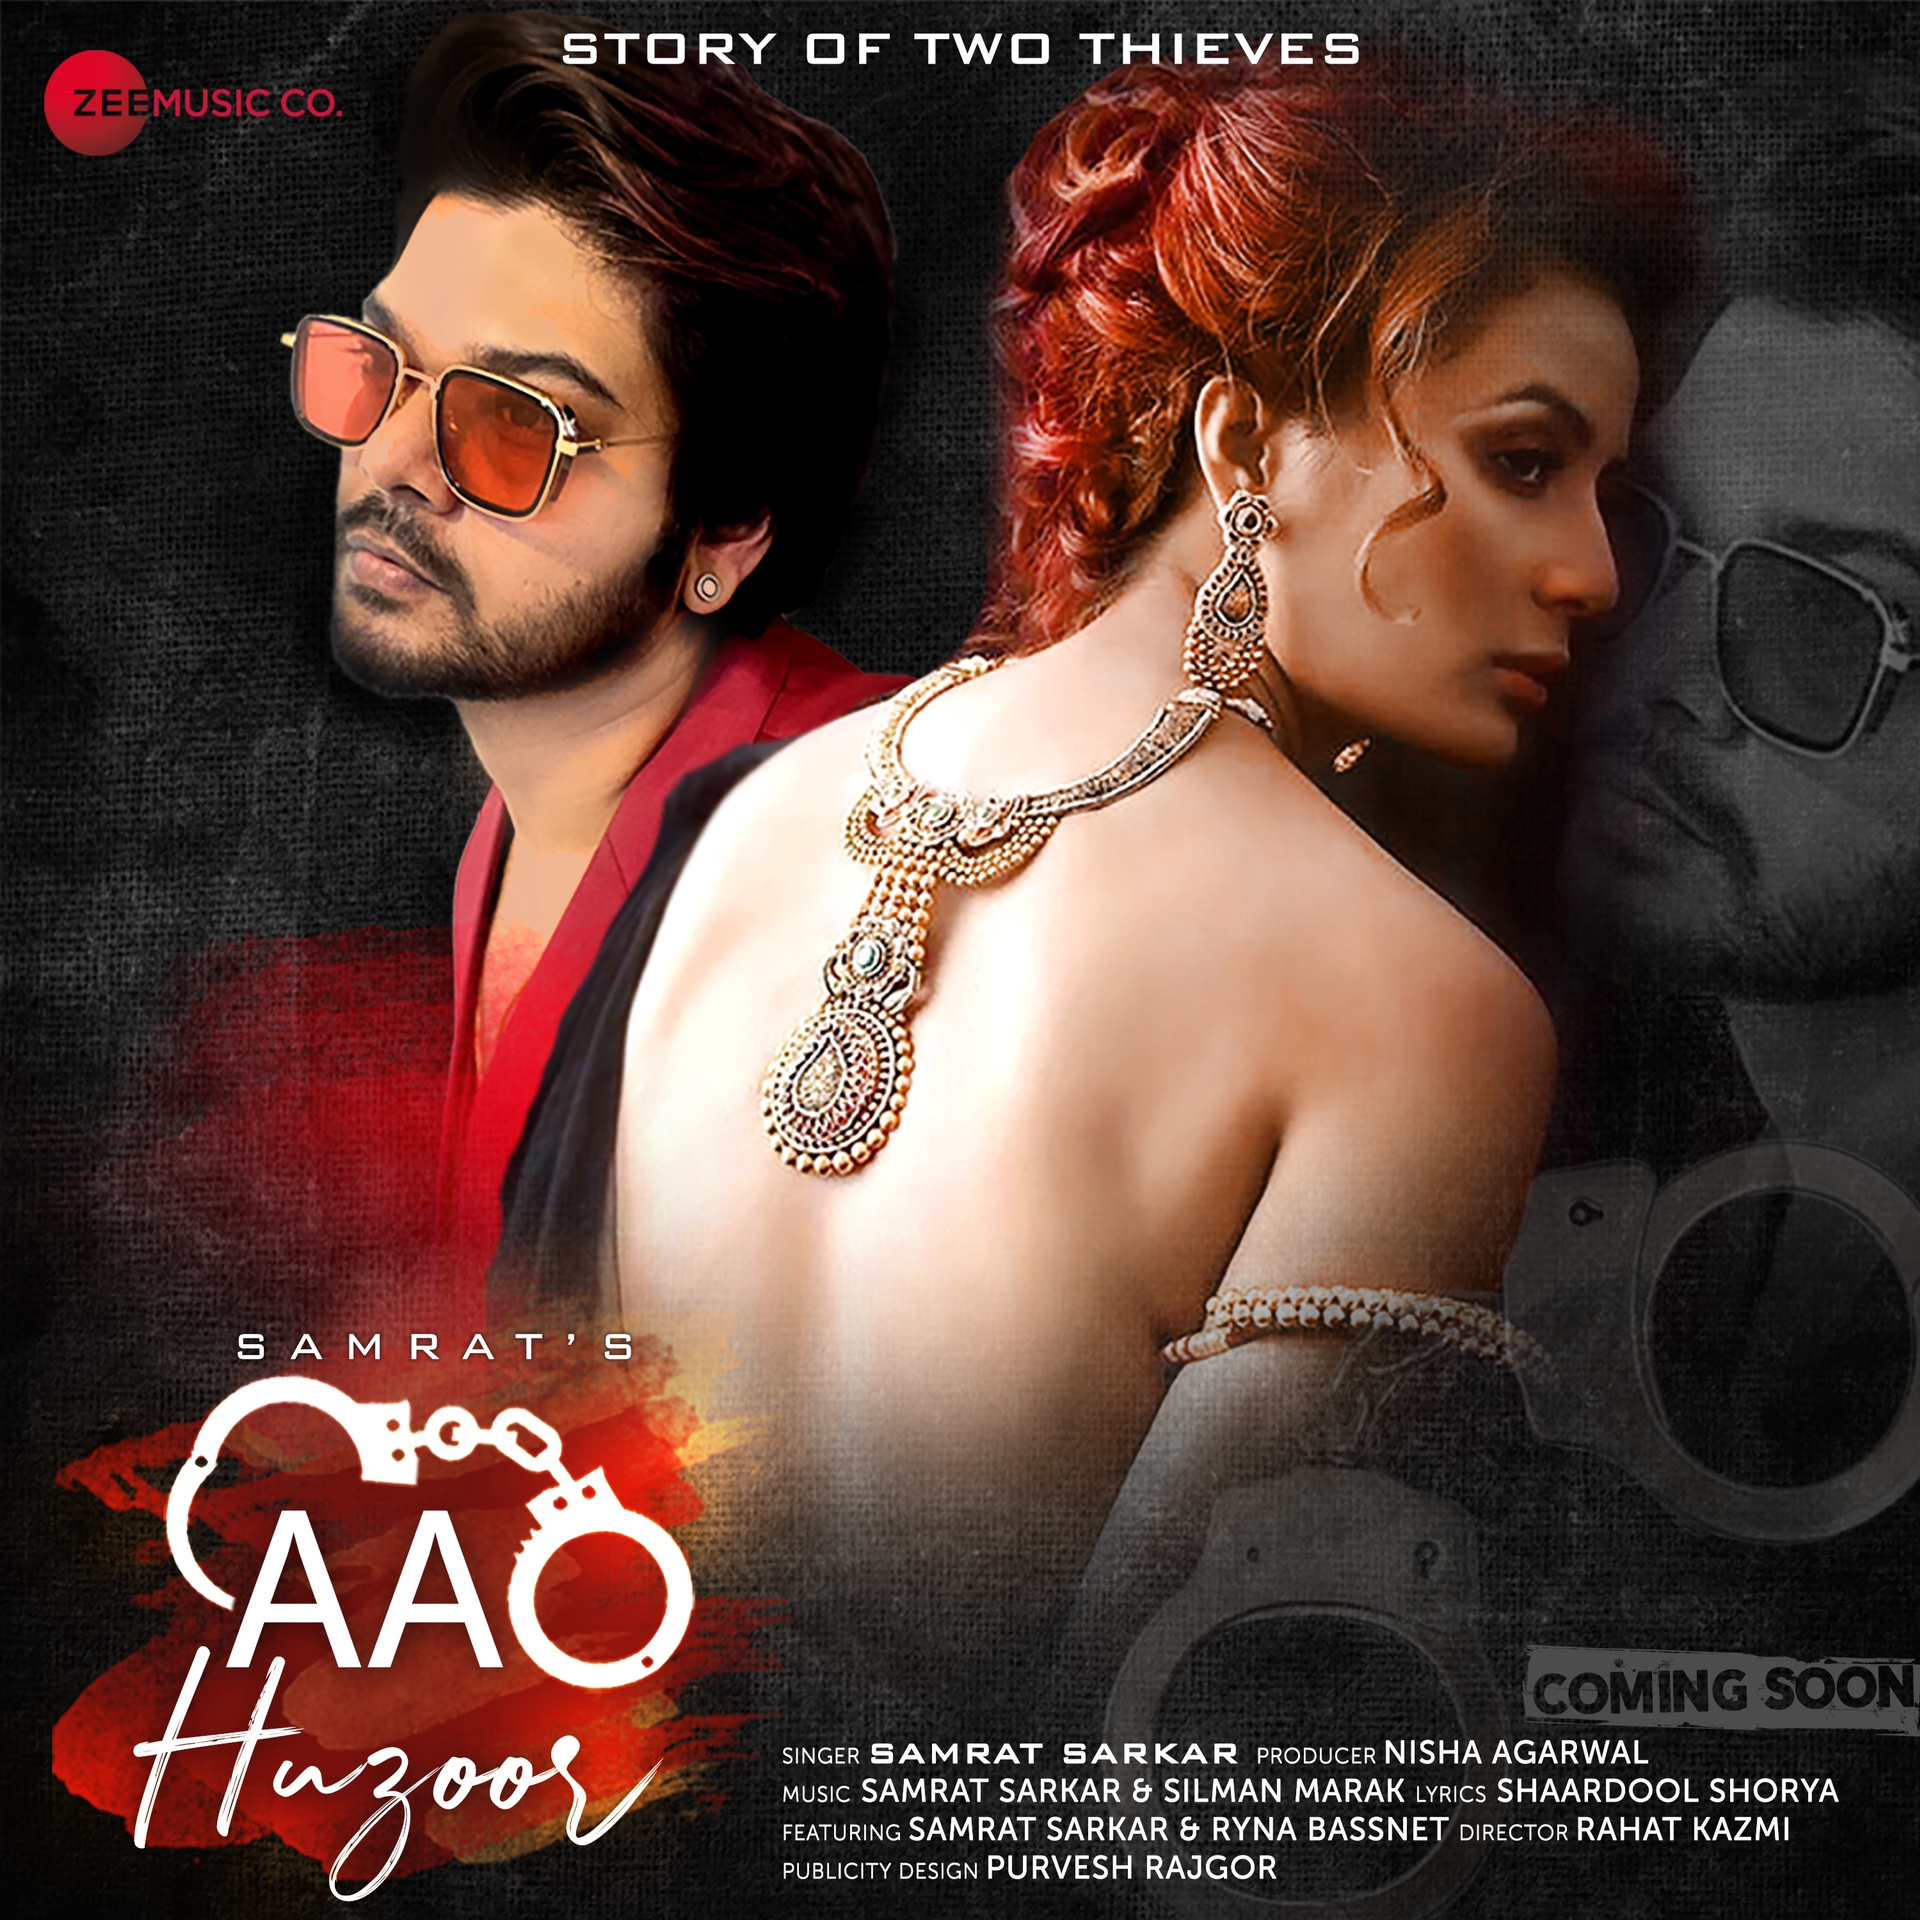 Aao Huzoor By Samrat Sarkar Official Music Video 1080p HDRip Download